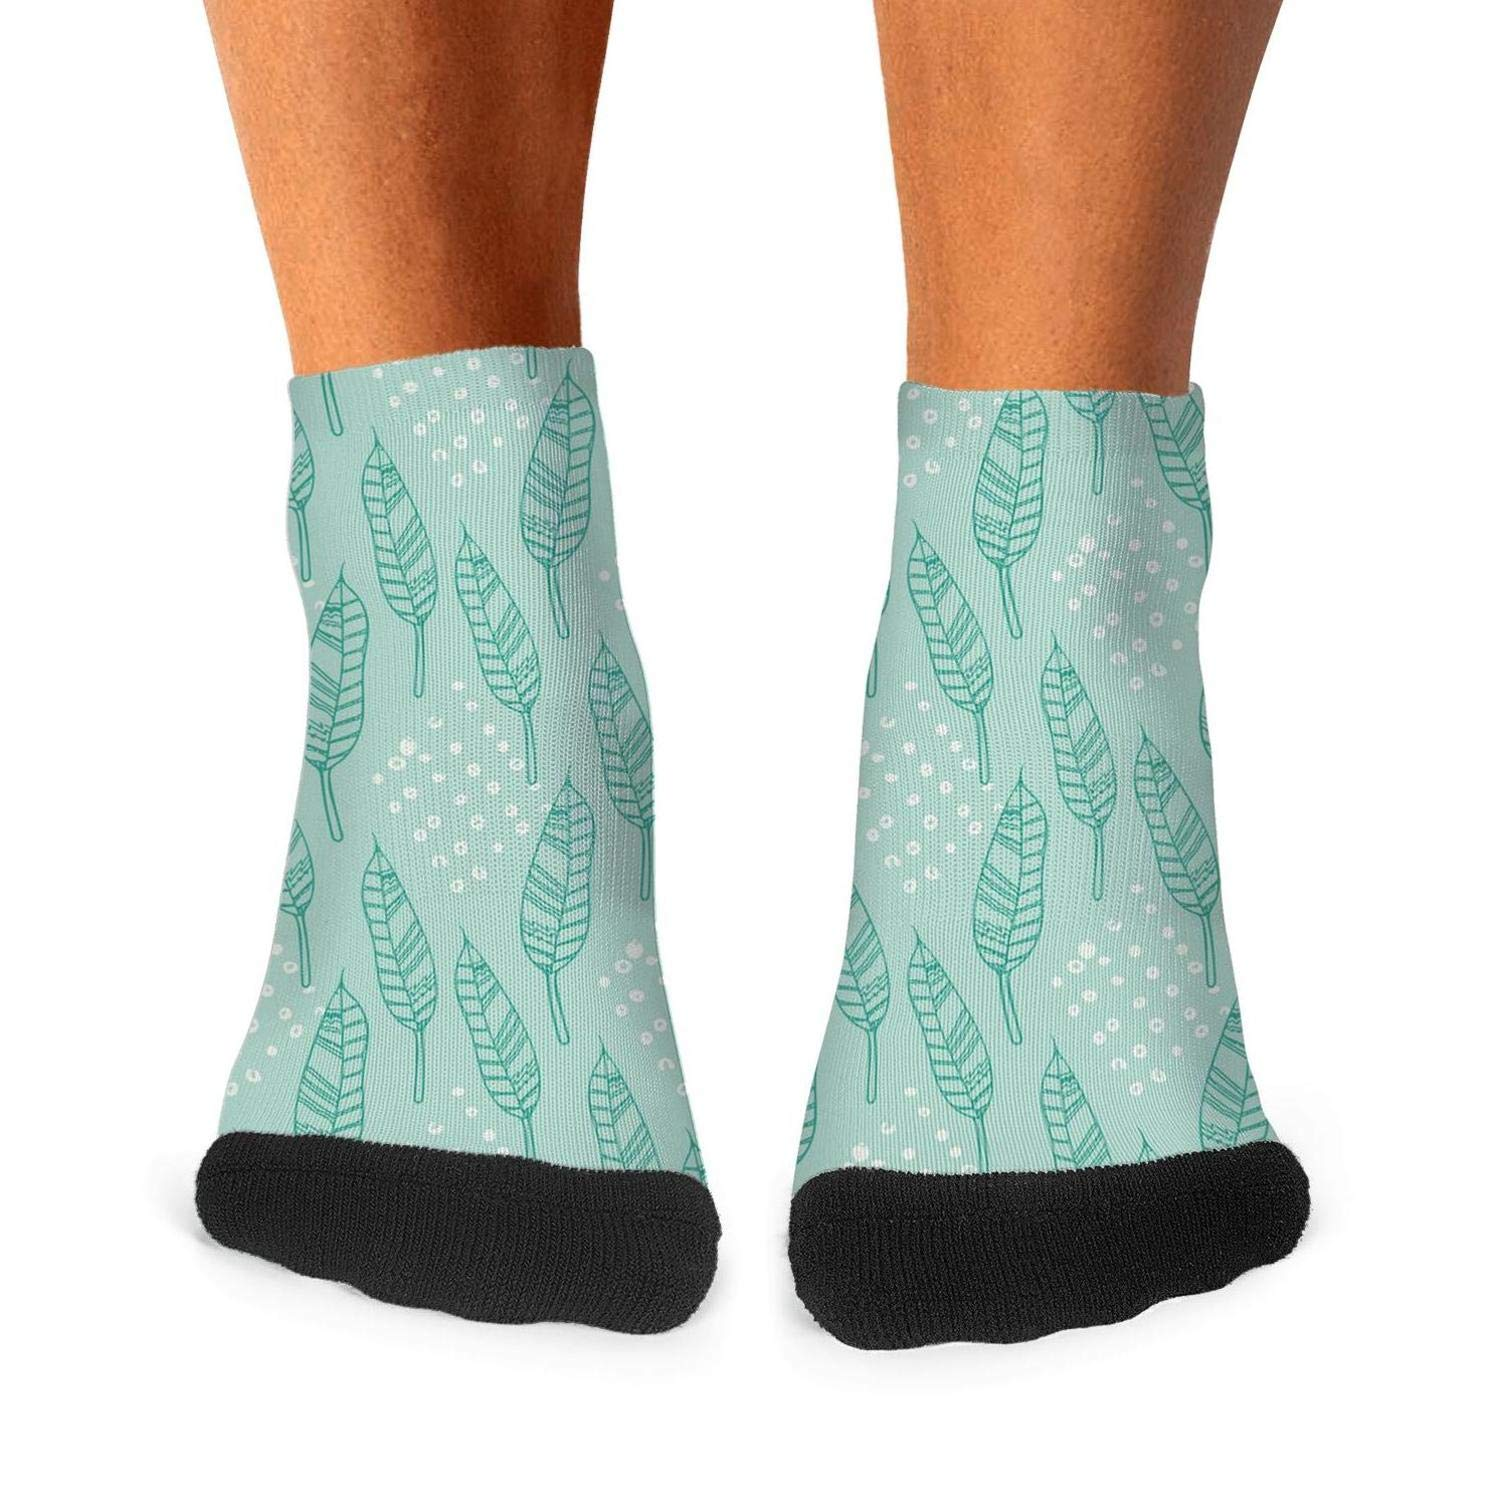 Feathers and butterfly mens socks casual no deformation compression socks funky short socks Unisex